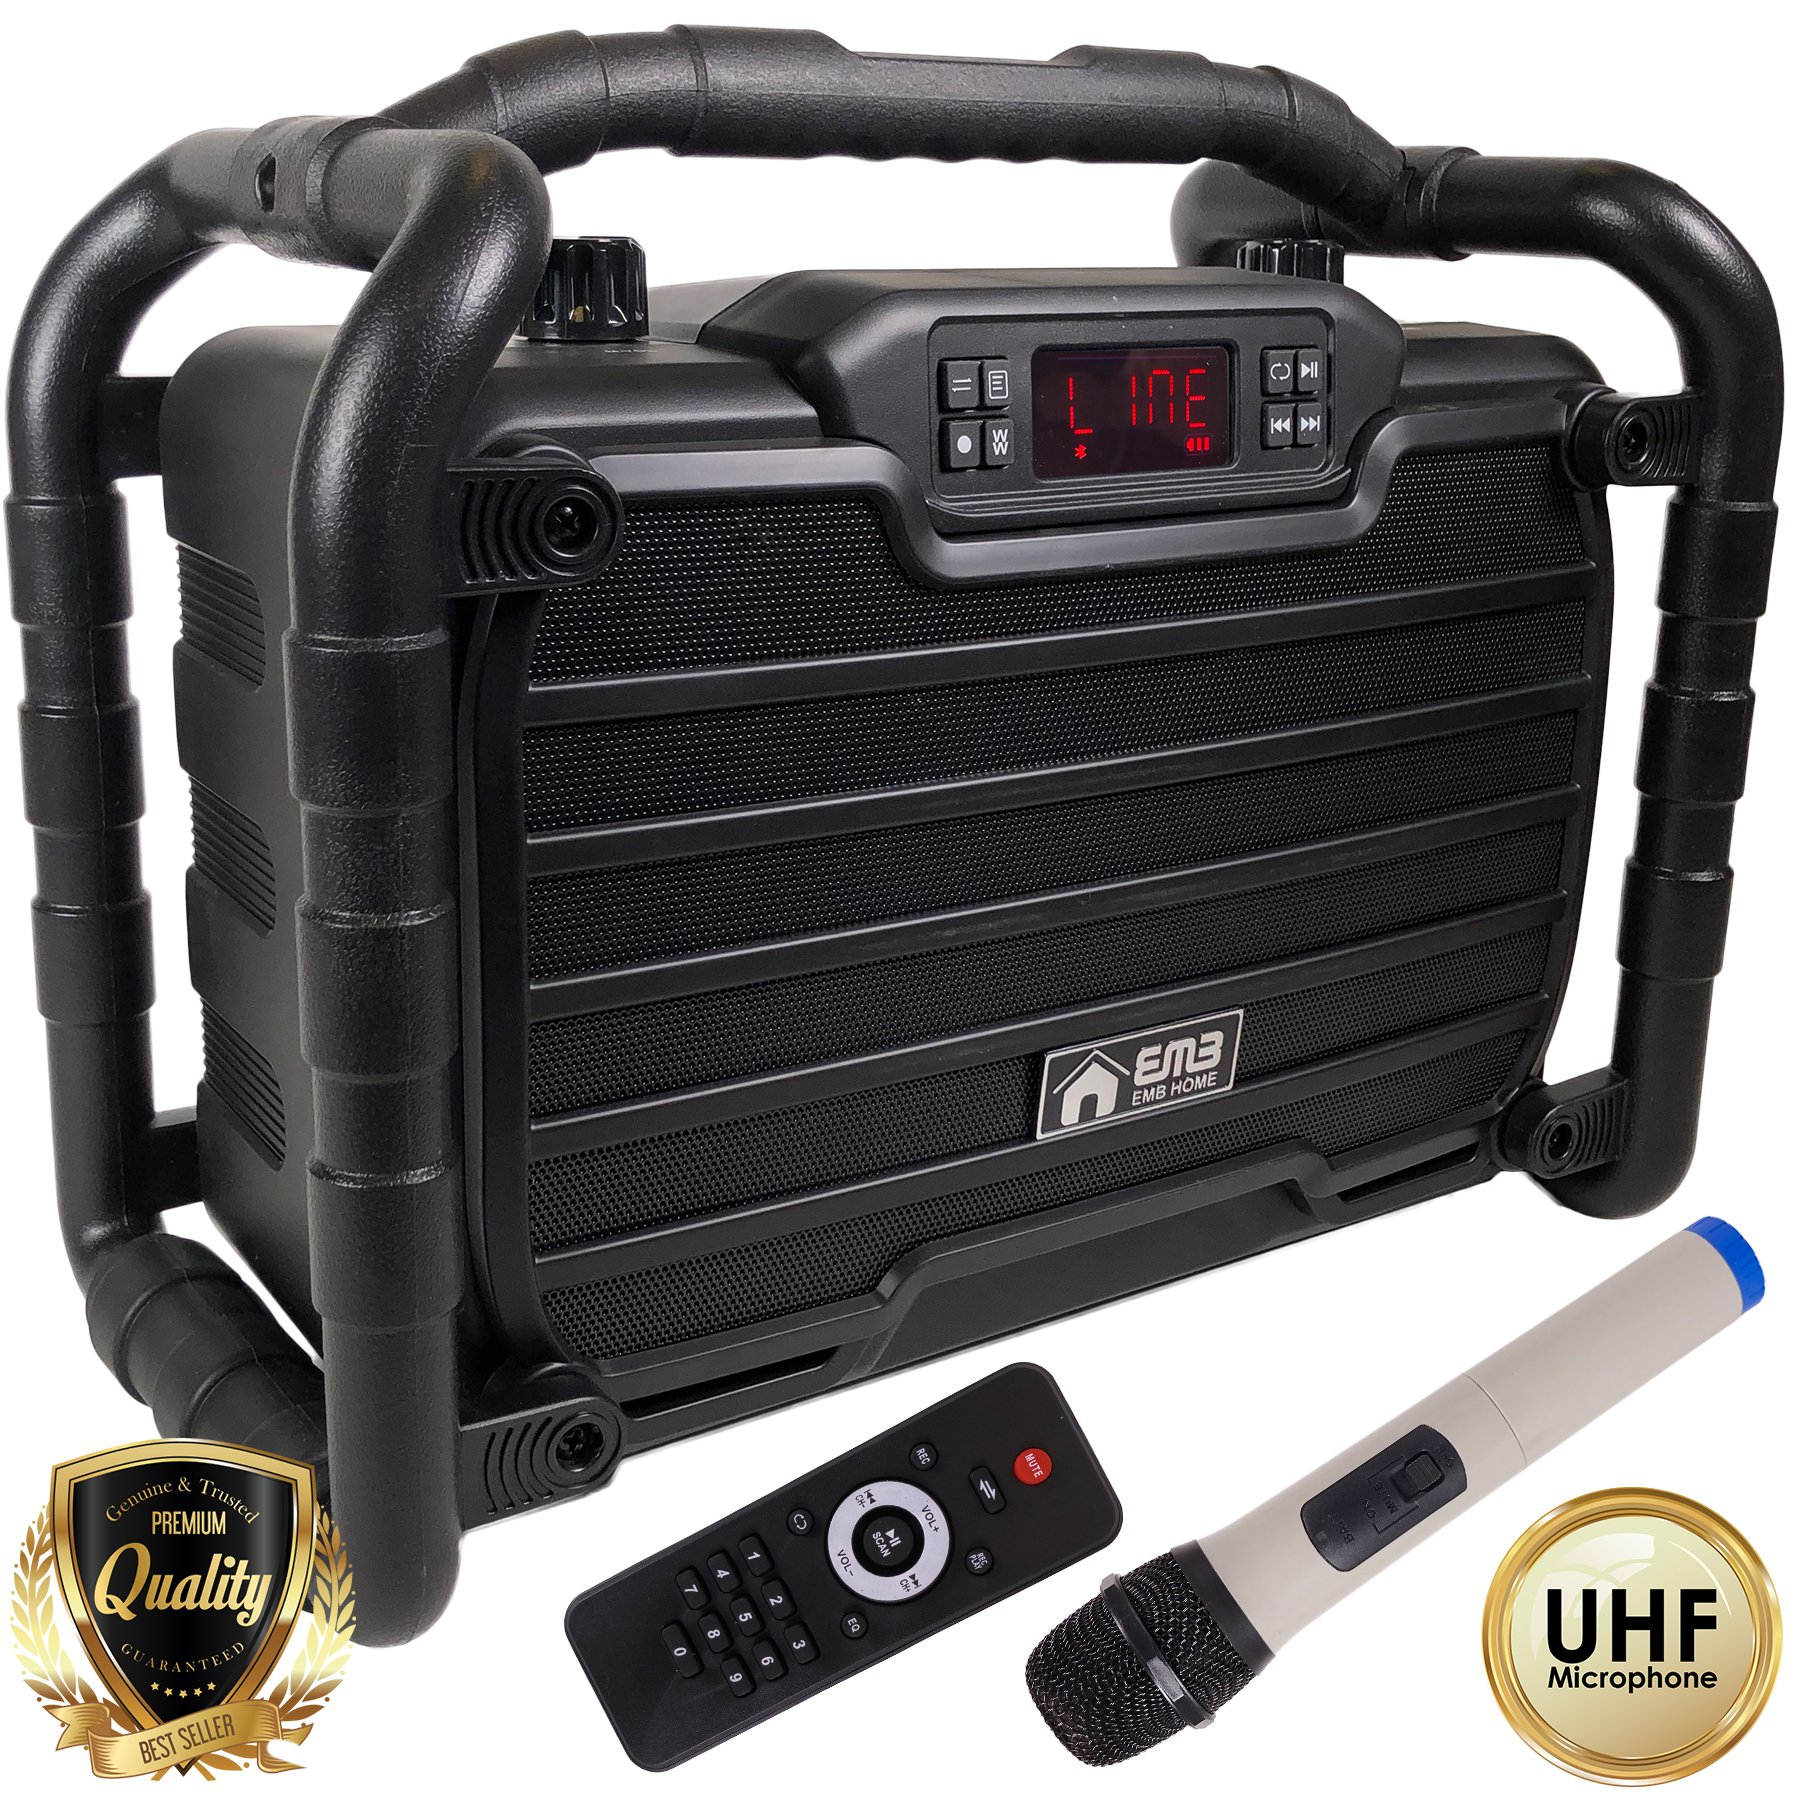 EMB Home PKL490BK PK1 300W Power Box Jobsite Bluetooth Stereo Rechargeable Speaker - Water Splash Proof / Shockproof / Dustproof - Perfect for Construction Site/ Beach / DJ Party / Shop / Home / Camp